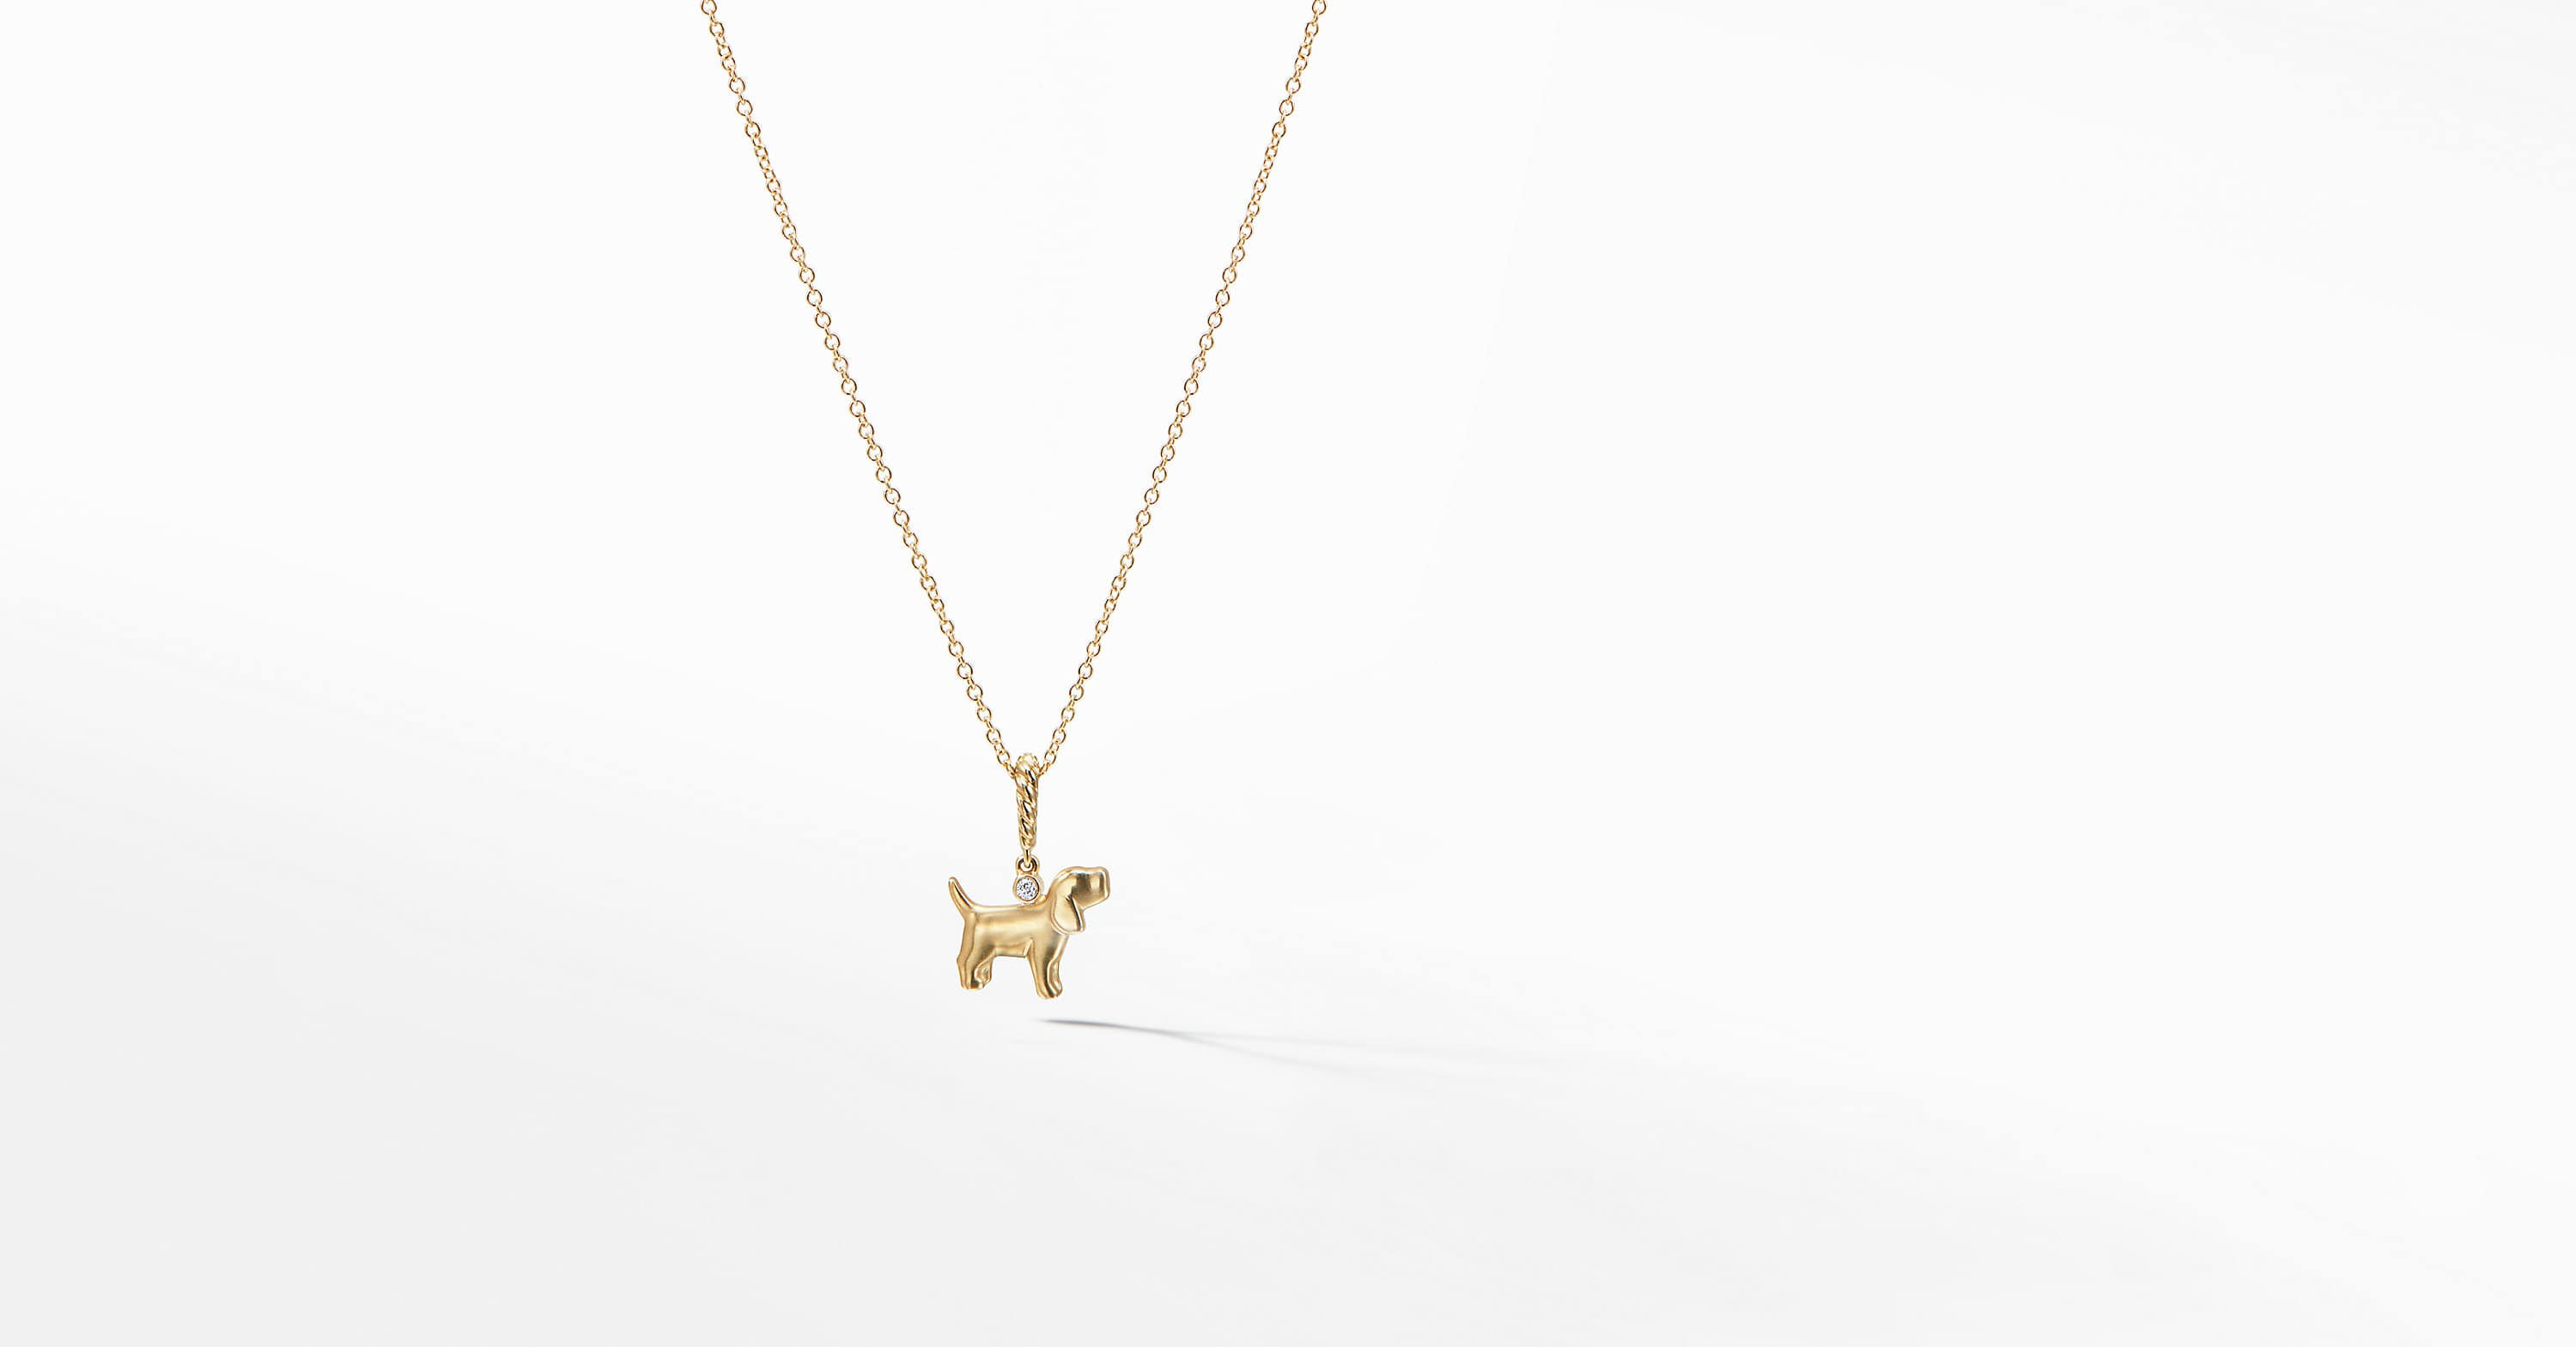 Cable Collectibles Kids Dog Charm Necklace in 18K Gold with Diamonds